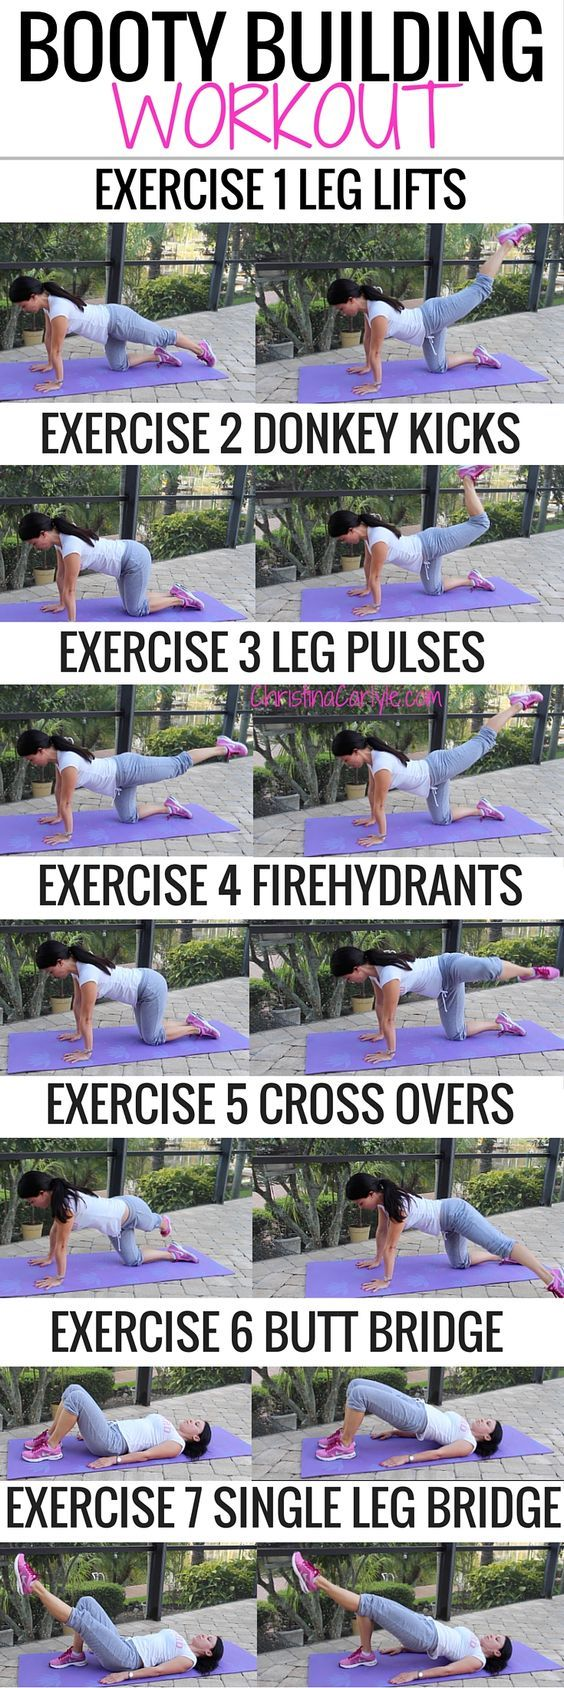 If you're tired of doing squats and lunges, then this booty workout is for you! While conventional butt building moves like squats are super effective, they can be really hard on your joints if they're done too often or with poor form. According to LiveStrong.com, the gluteus maximus has the potential to be one of …